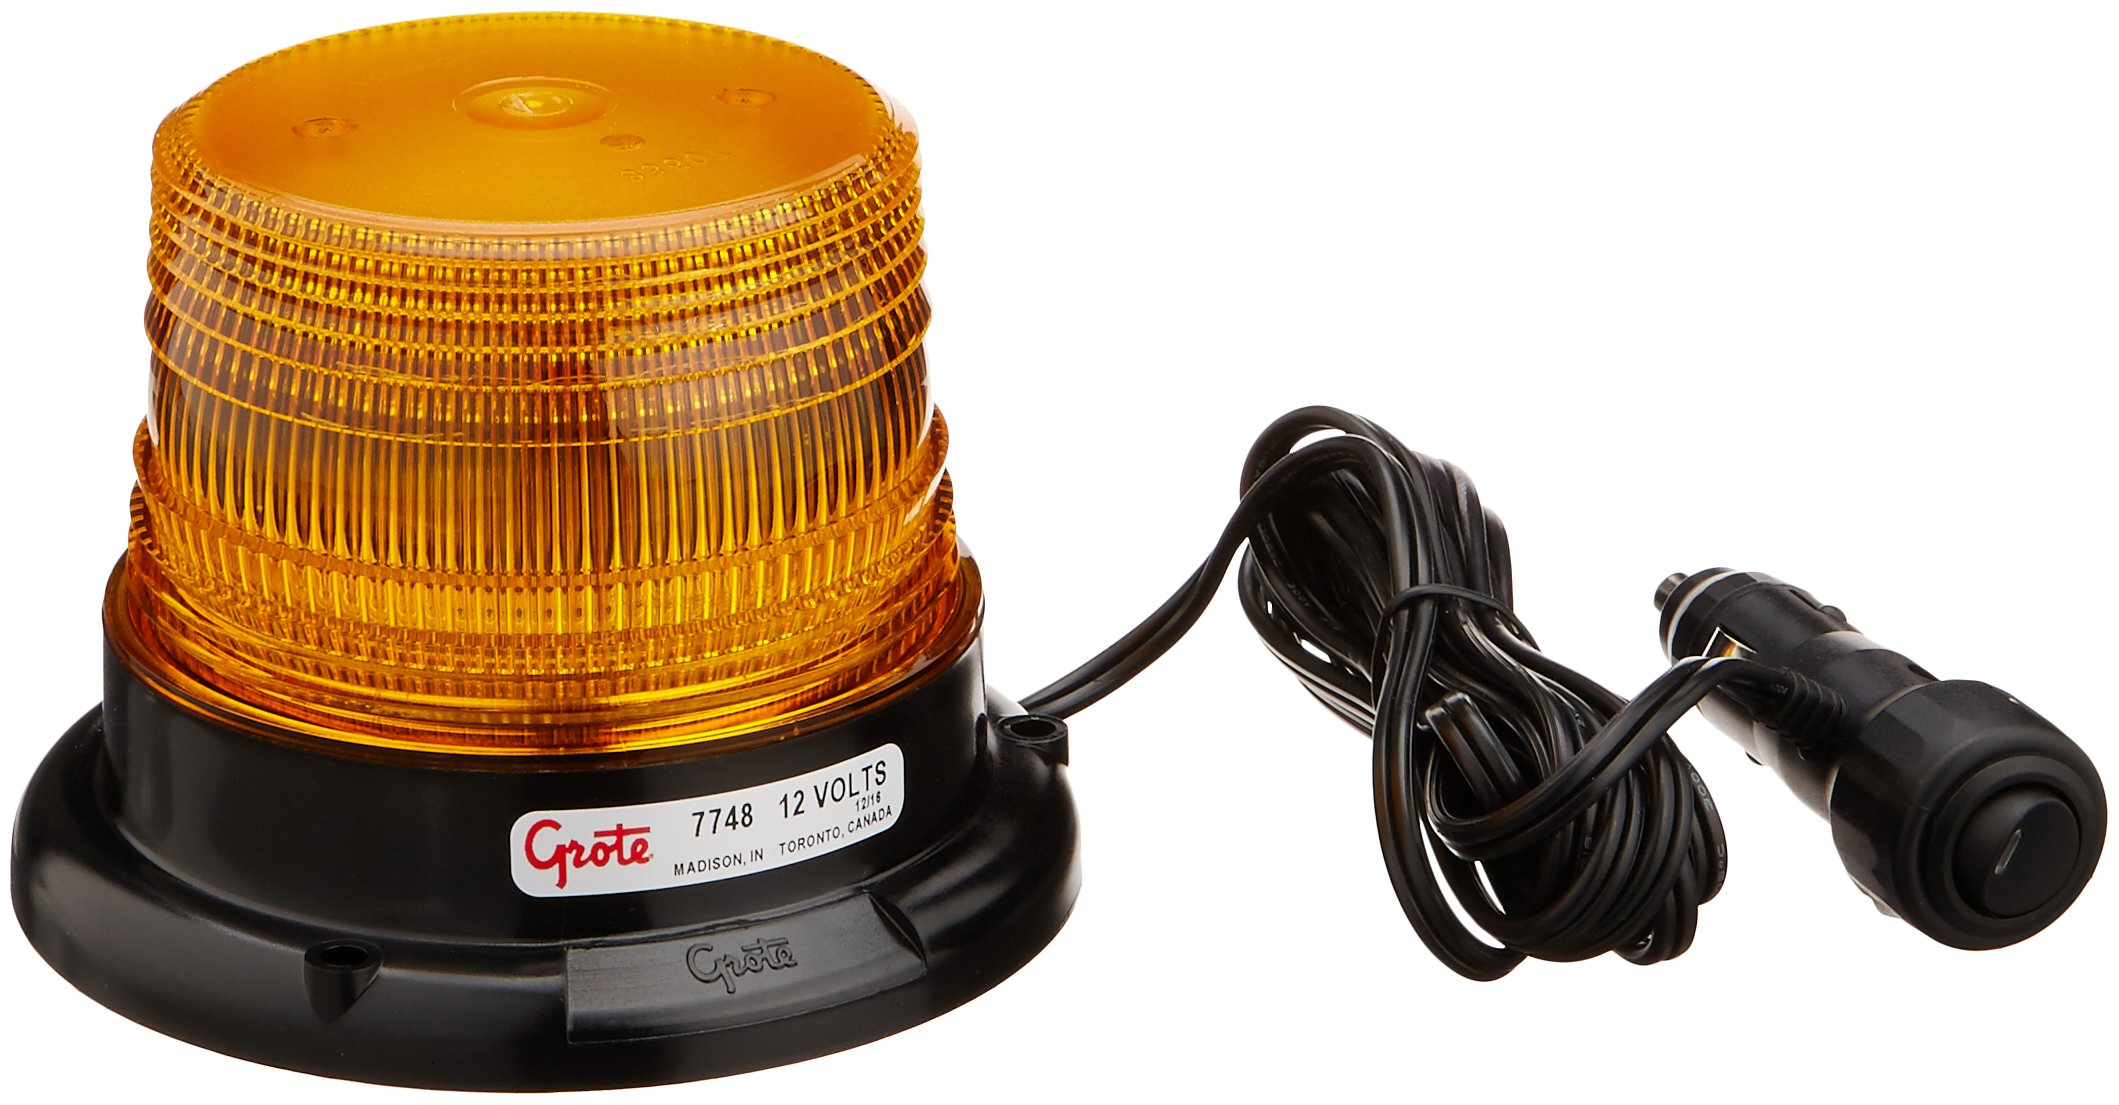 Grote 77483 Yellow Mighty Mini LED Strobe (Magnet Mount with Cigarette Lighter Adapter)